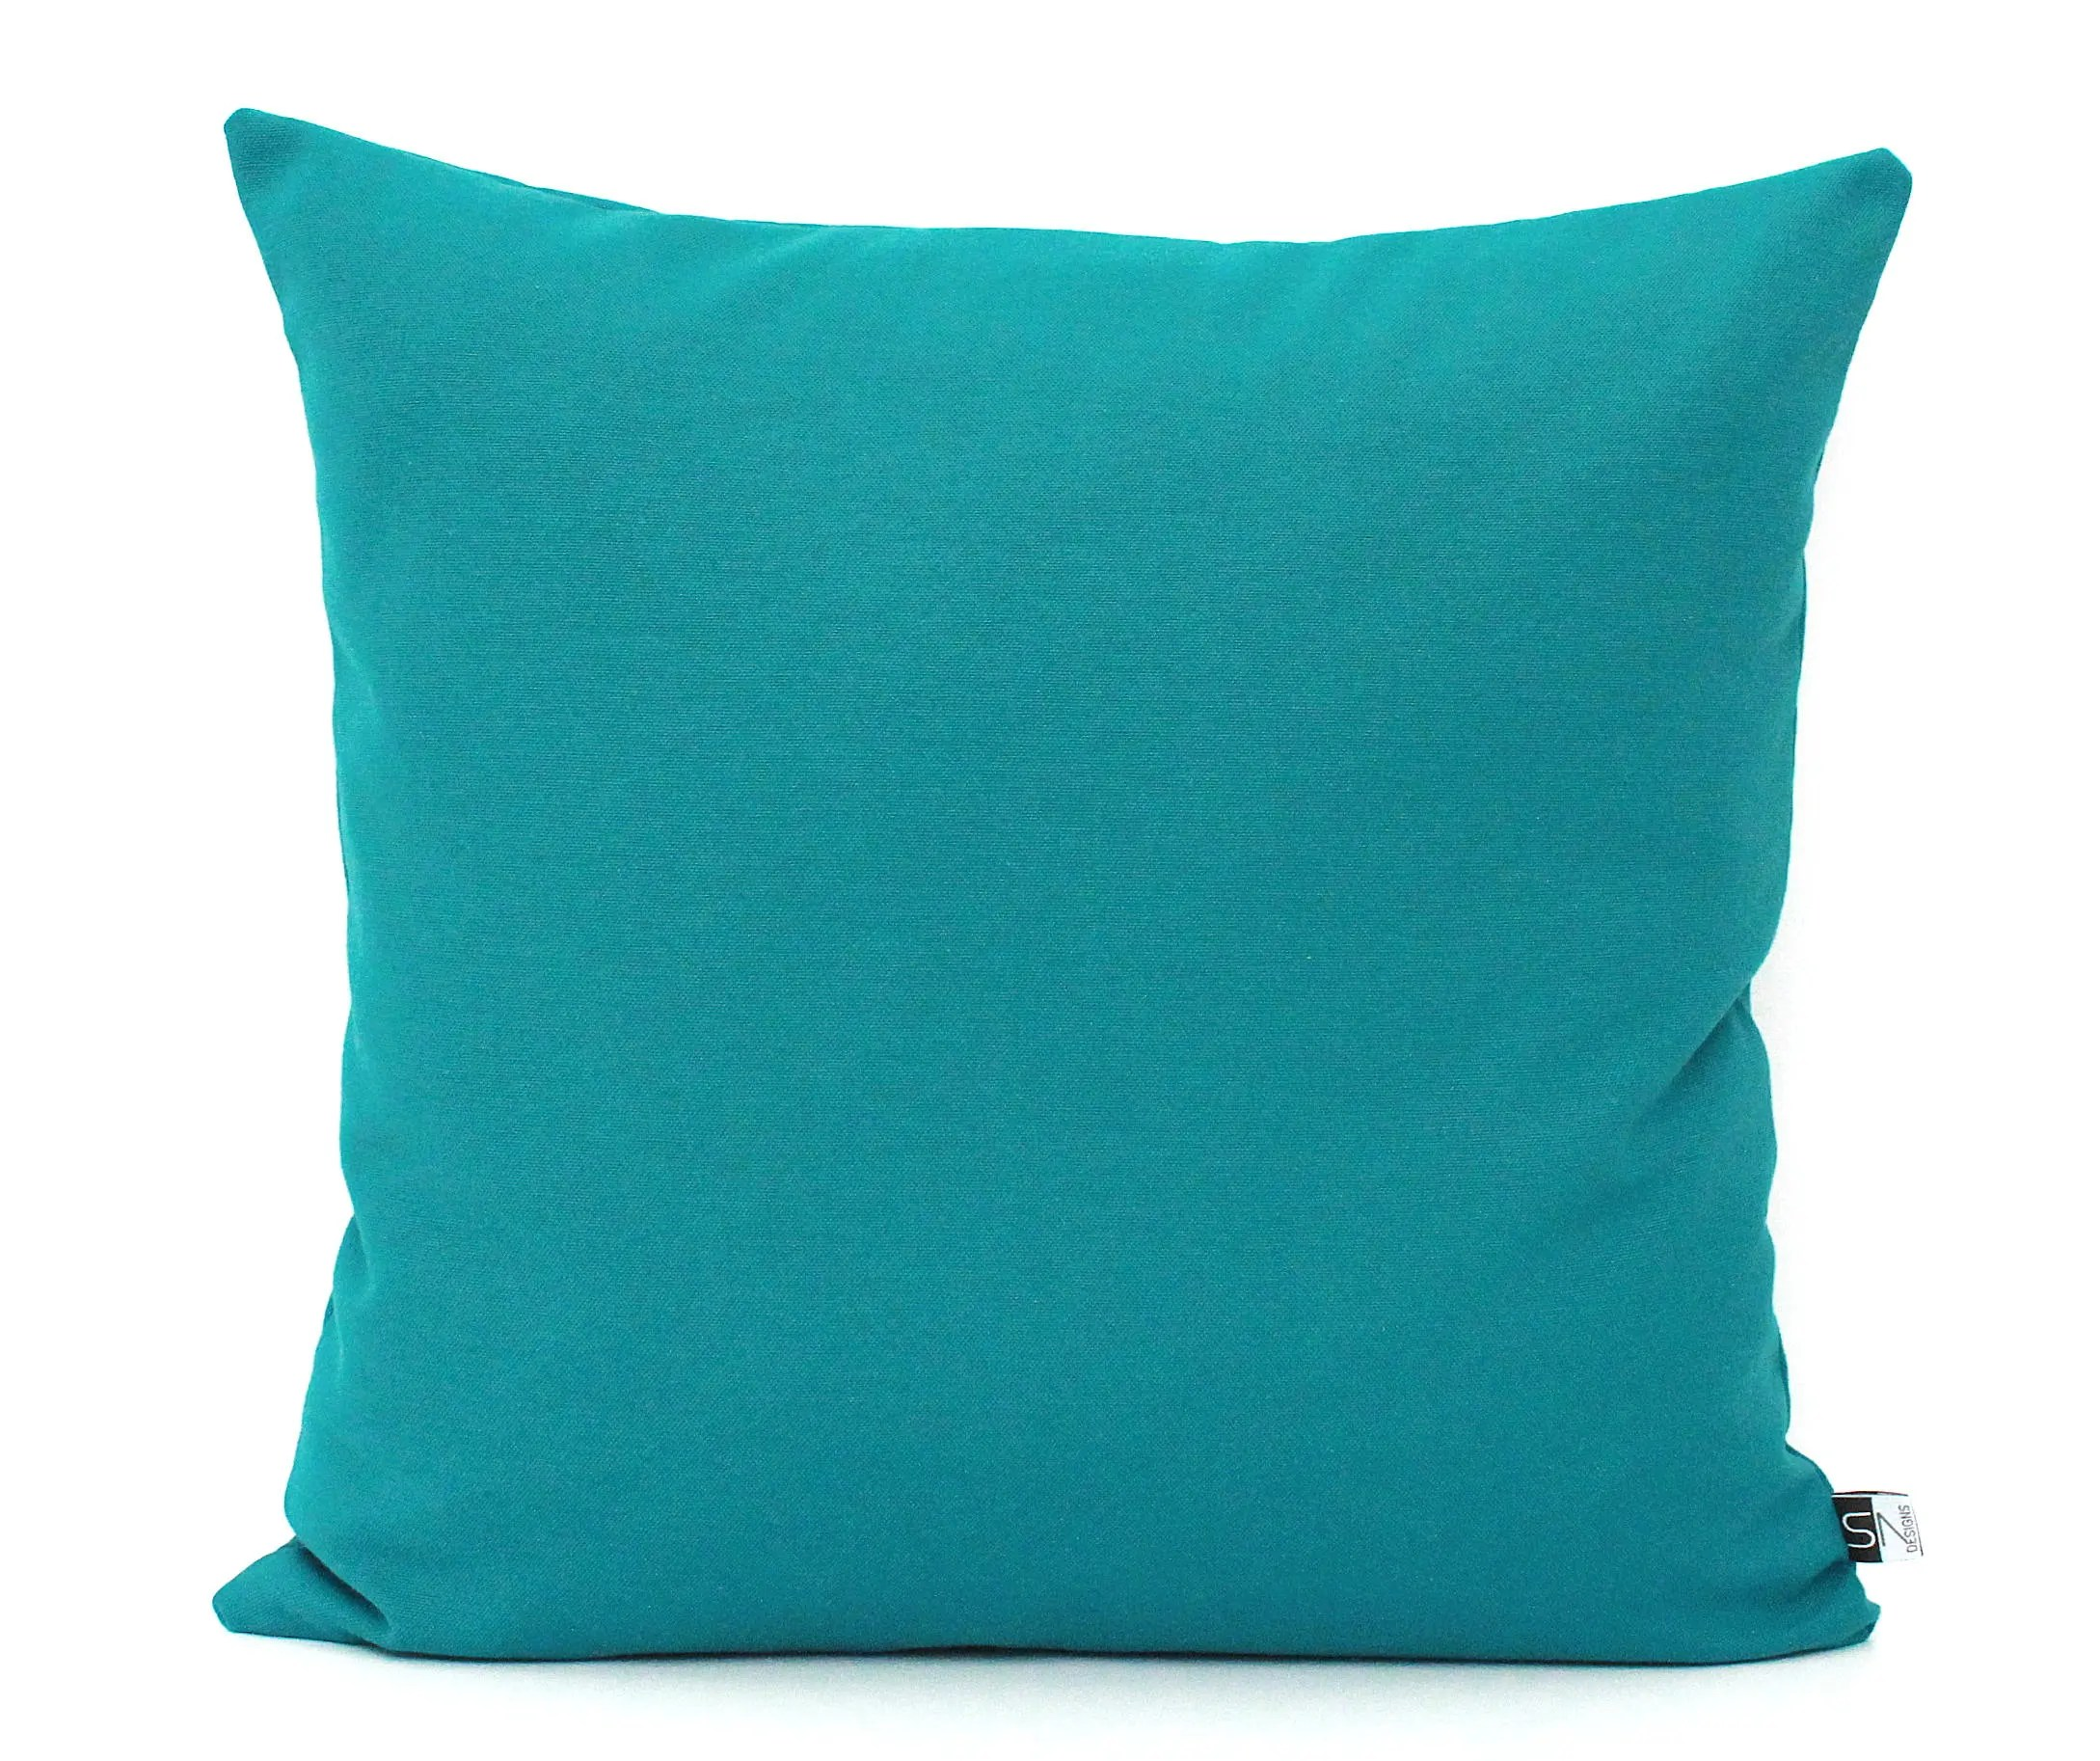 Teal pillows  Etsy